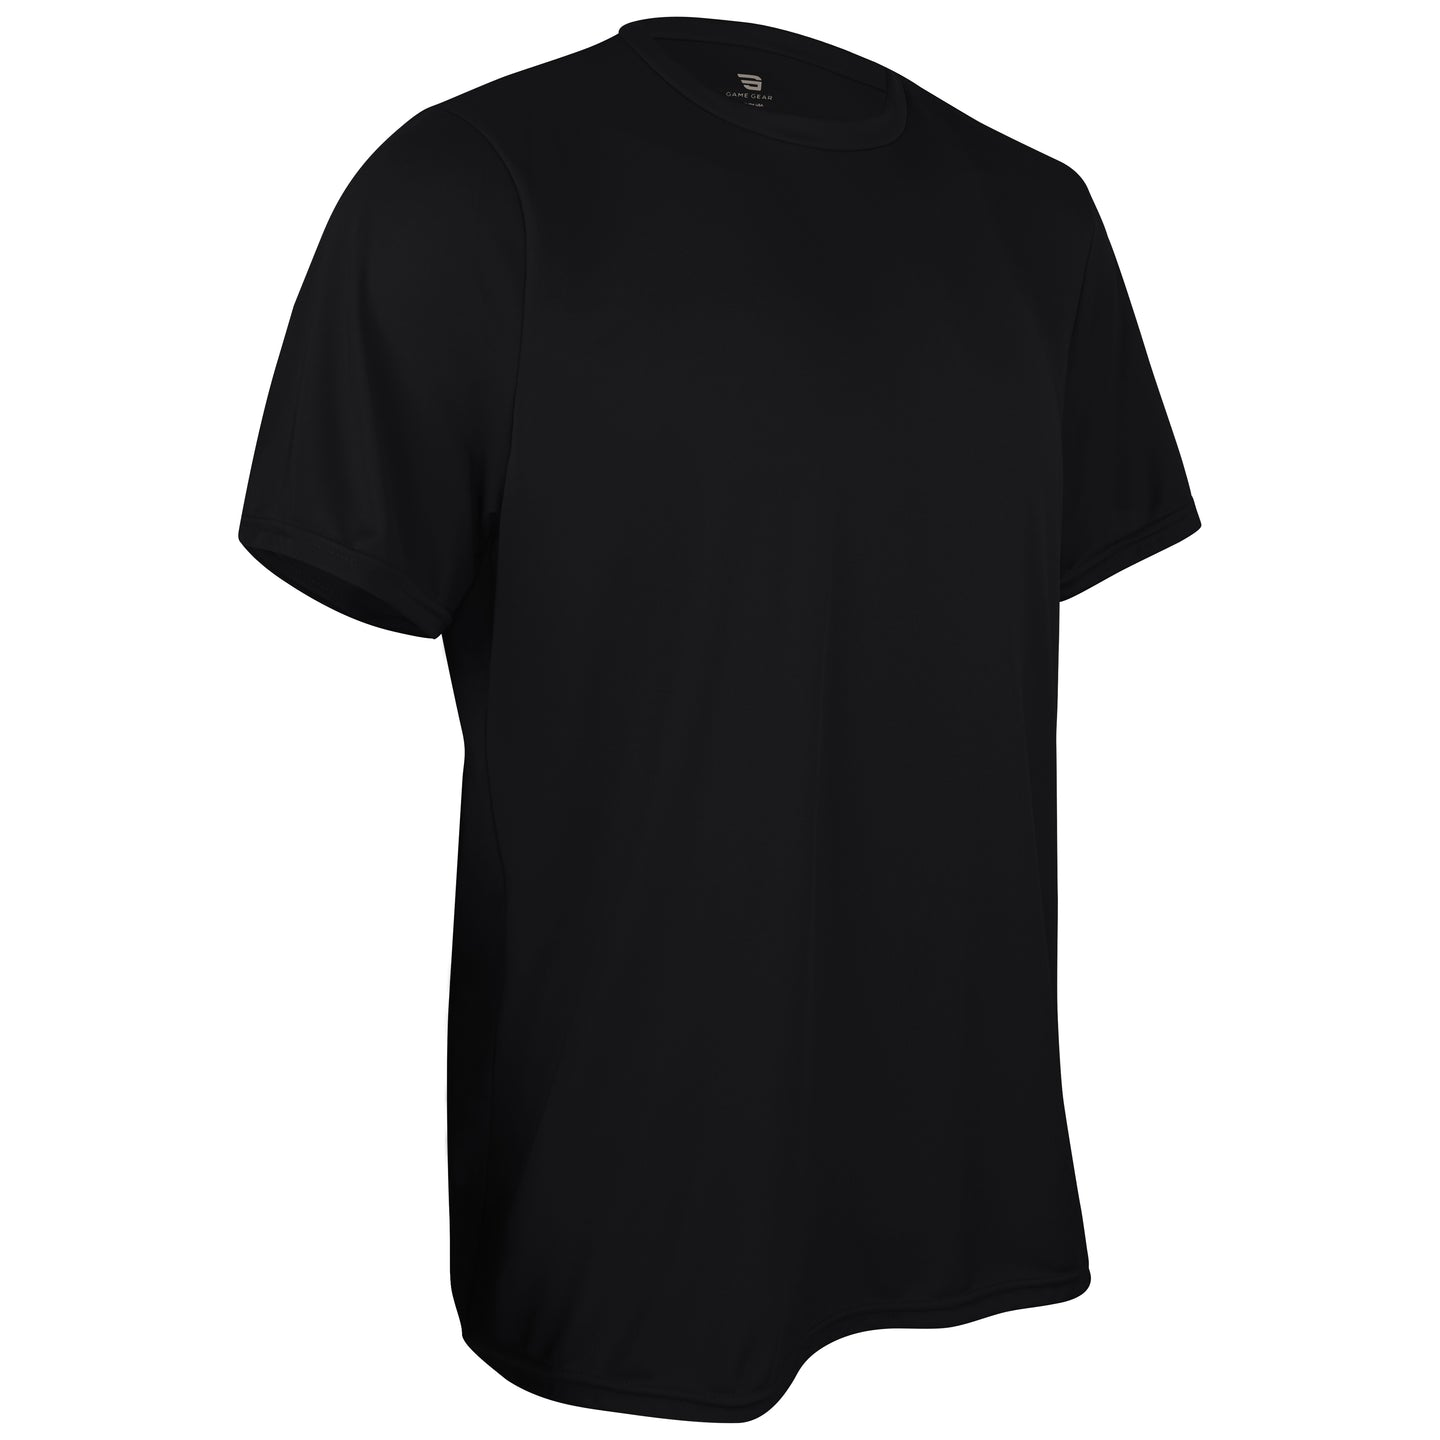 PT-802S-CB Men's Performance Tech Crew Neck Short Sleeve Shirt